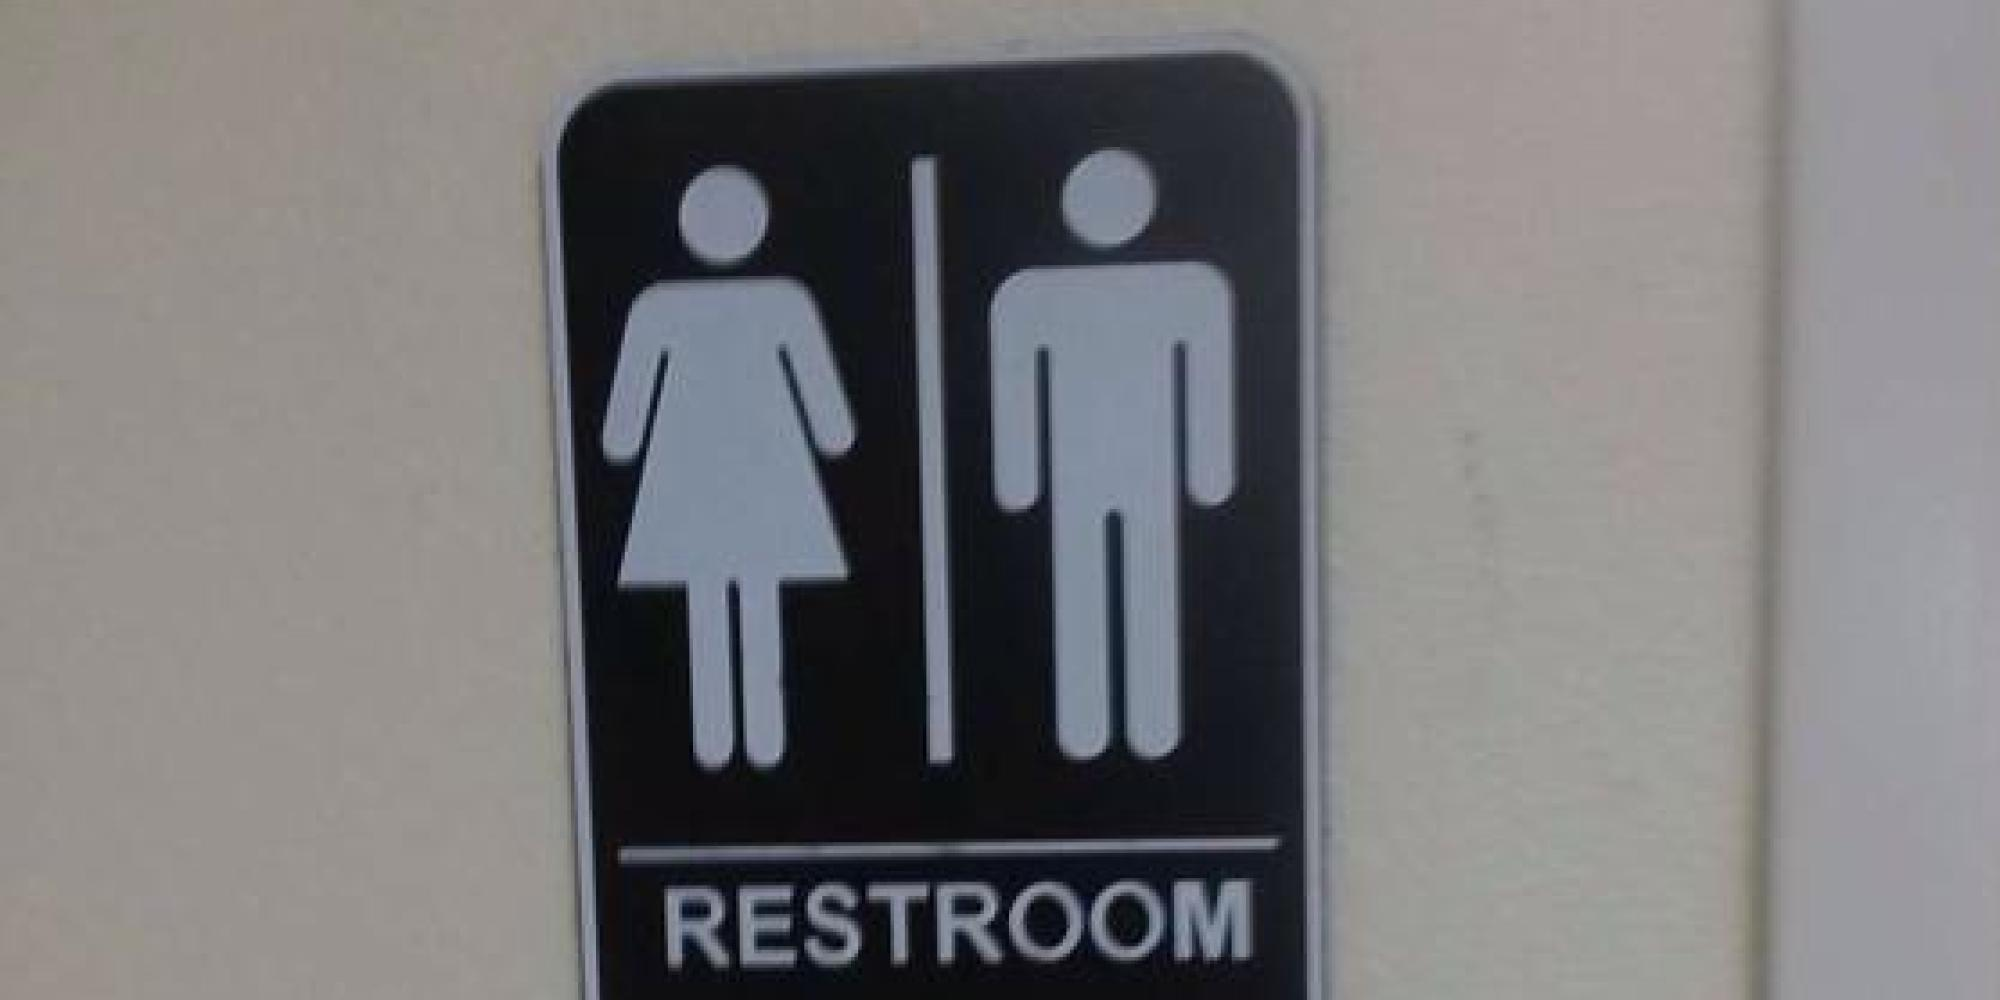 Gender Neutral Bathrooms To Be Installed In Ottawa Schools